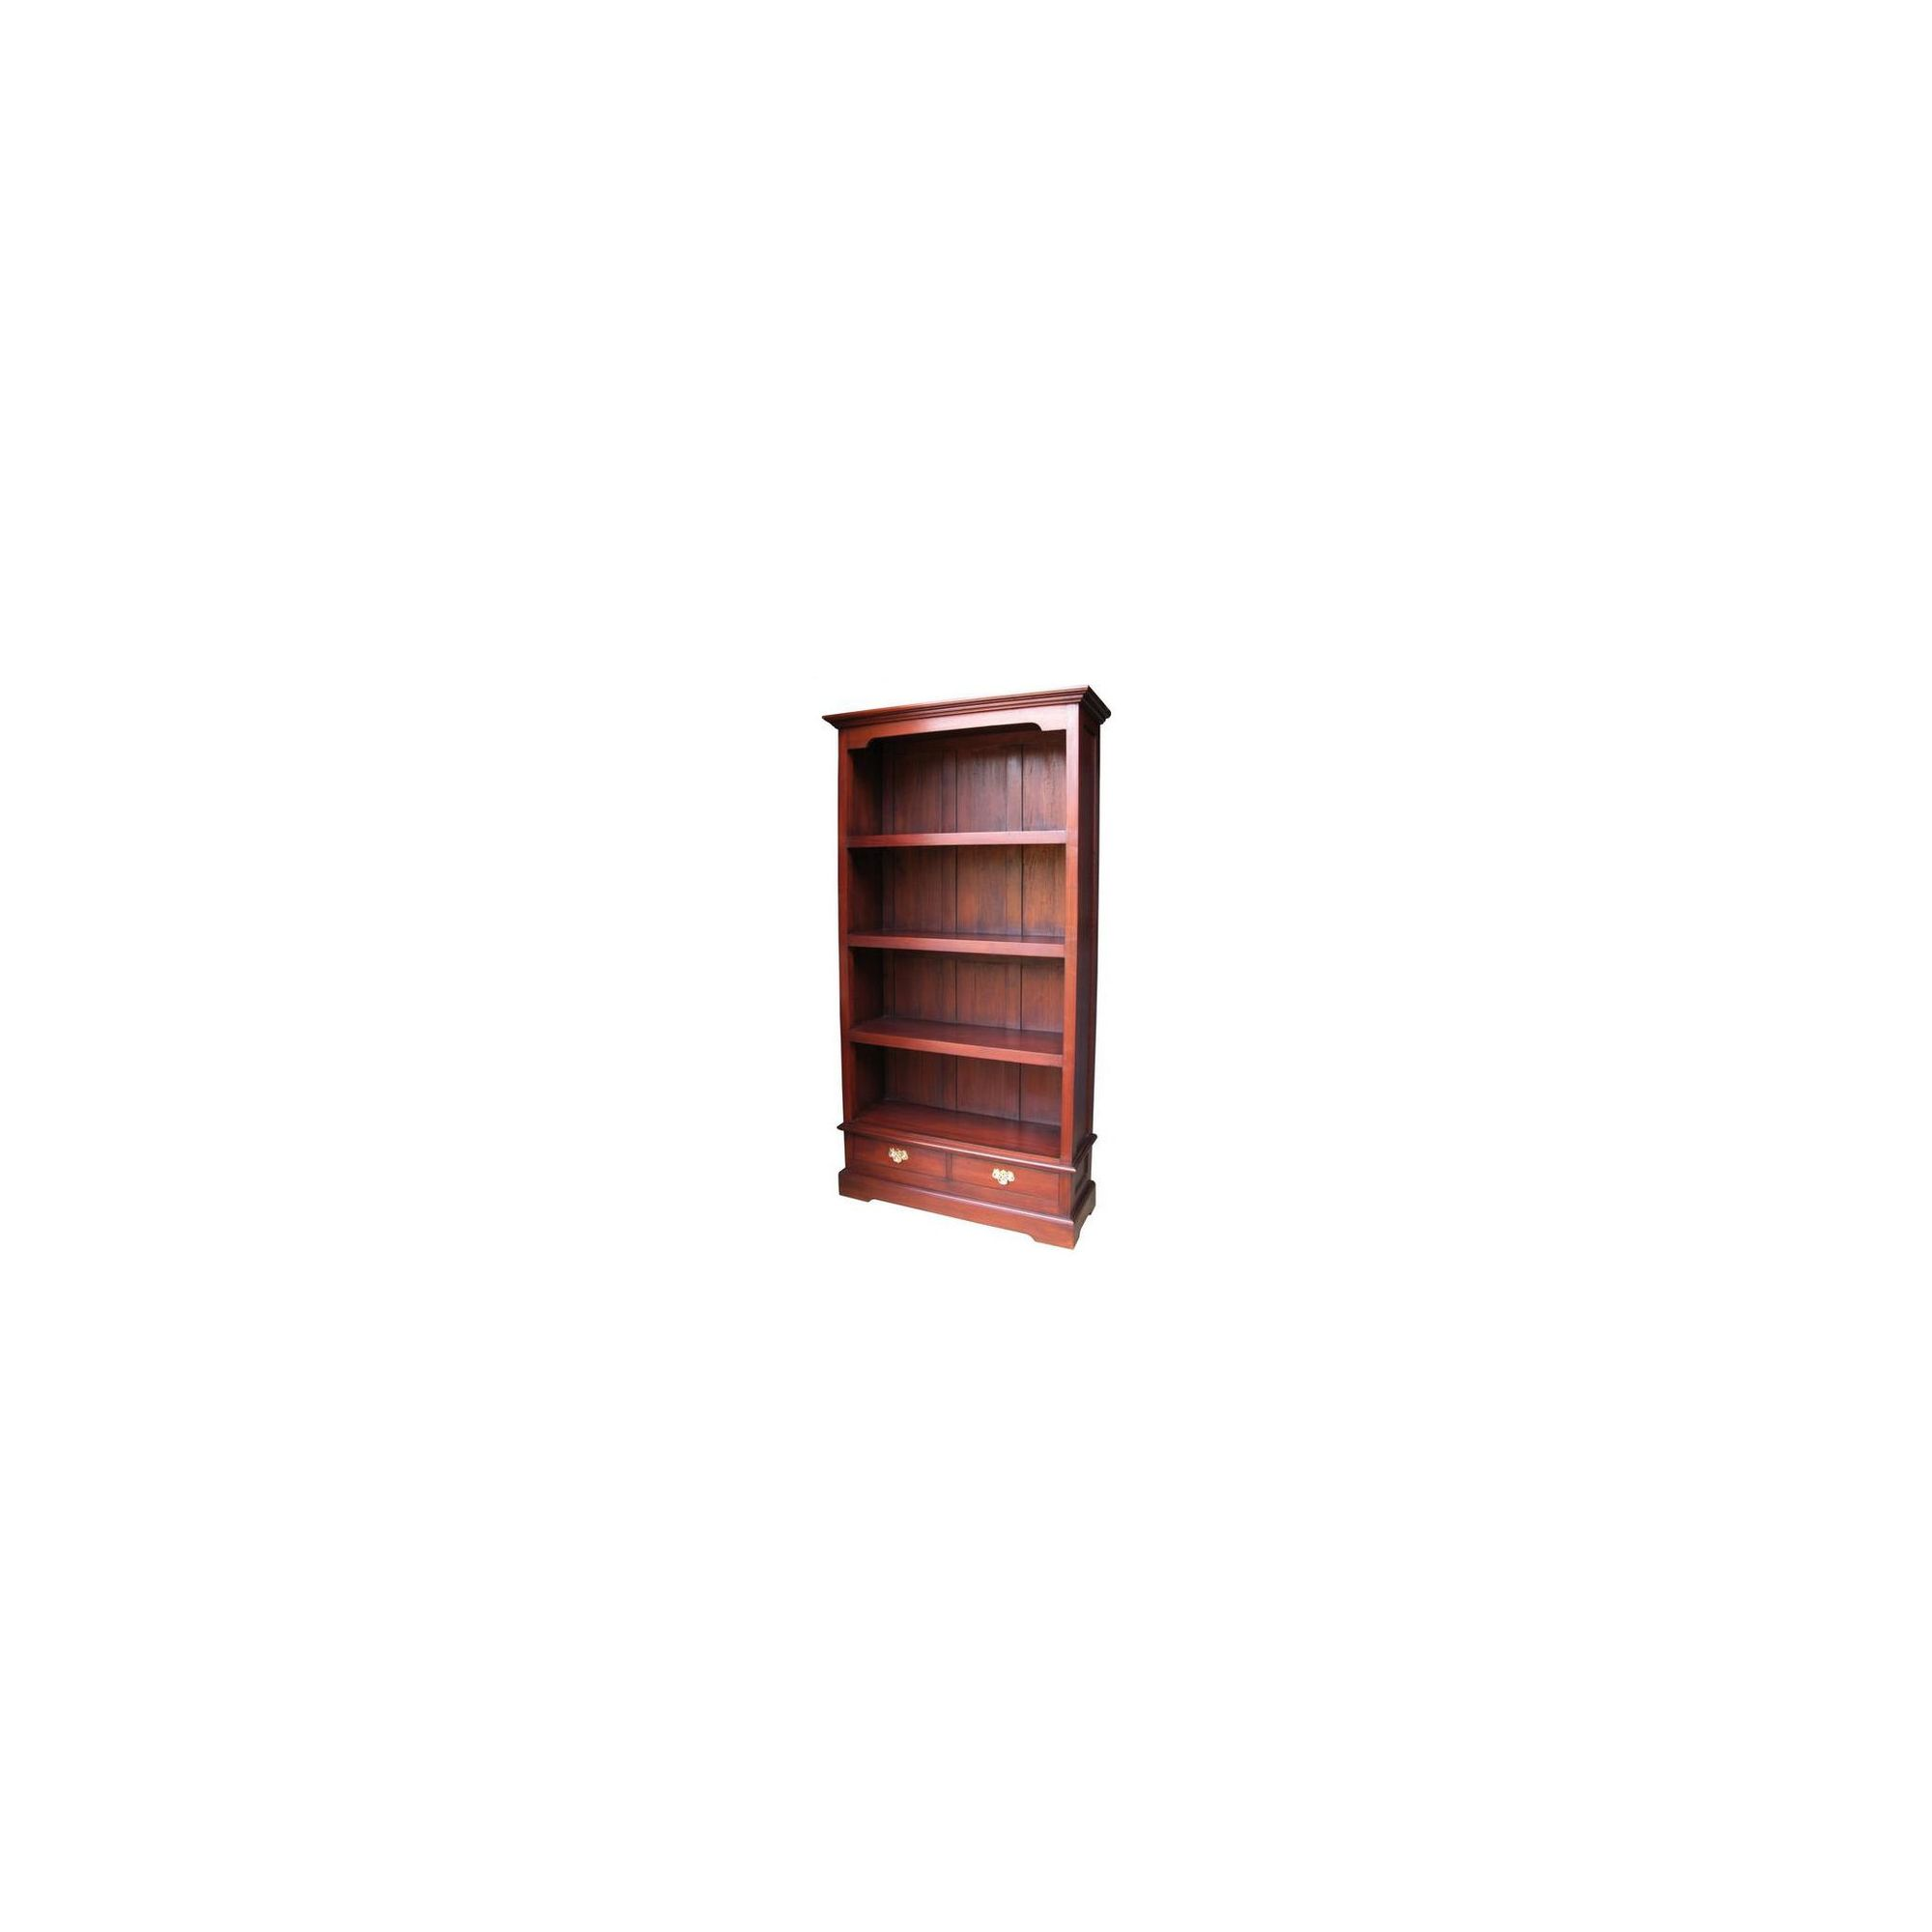 Lock stock and barrel Mahogany Standard 2 Drawer Bookcase in Mahogany at Tescos Direct